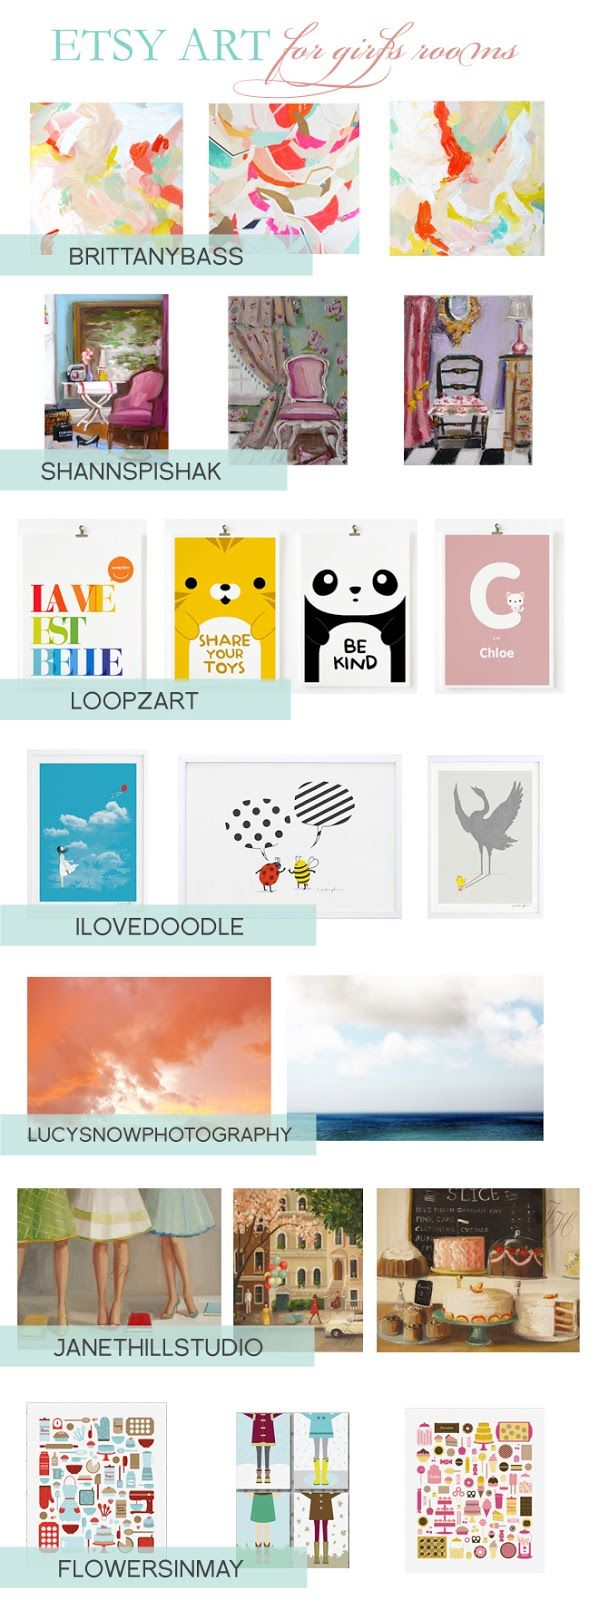 Home daycare design-ideen etsy art for girlsu rooms  home decor  pinterest